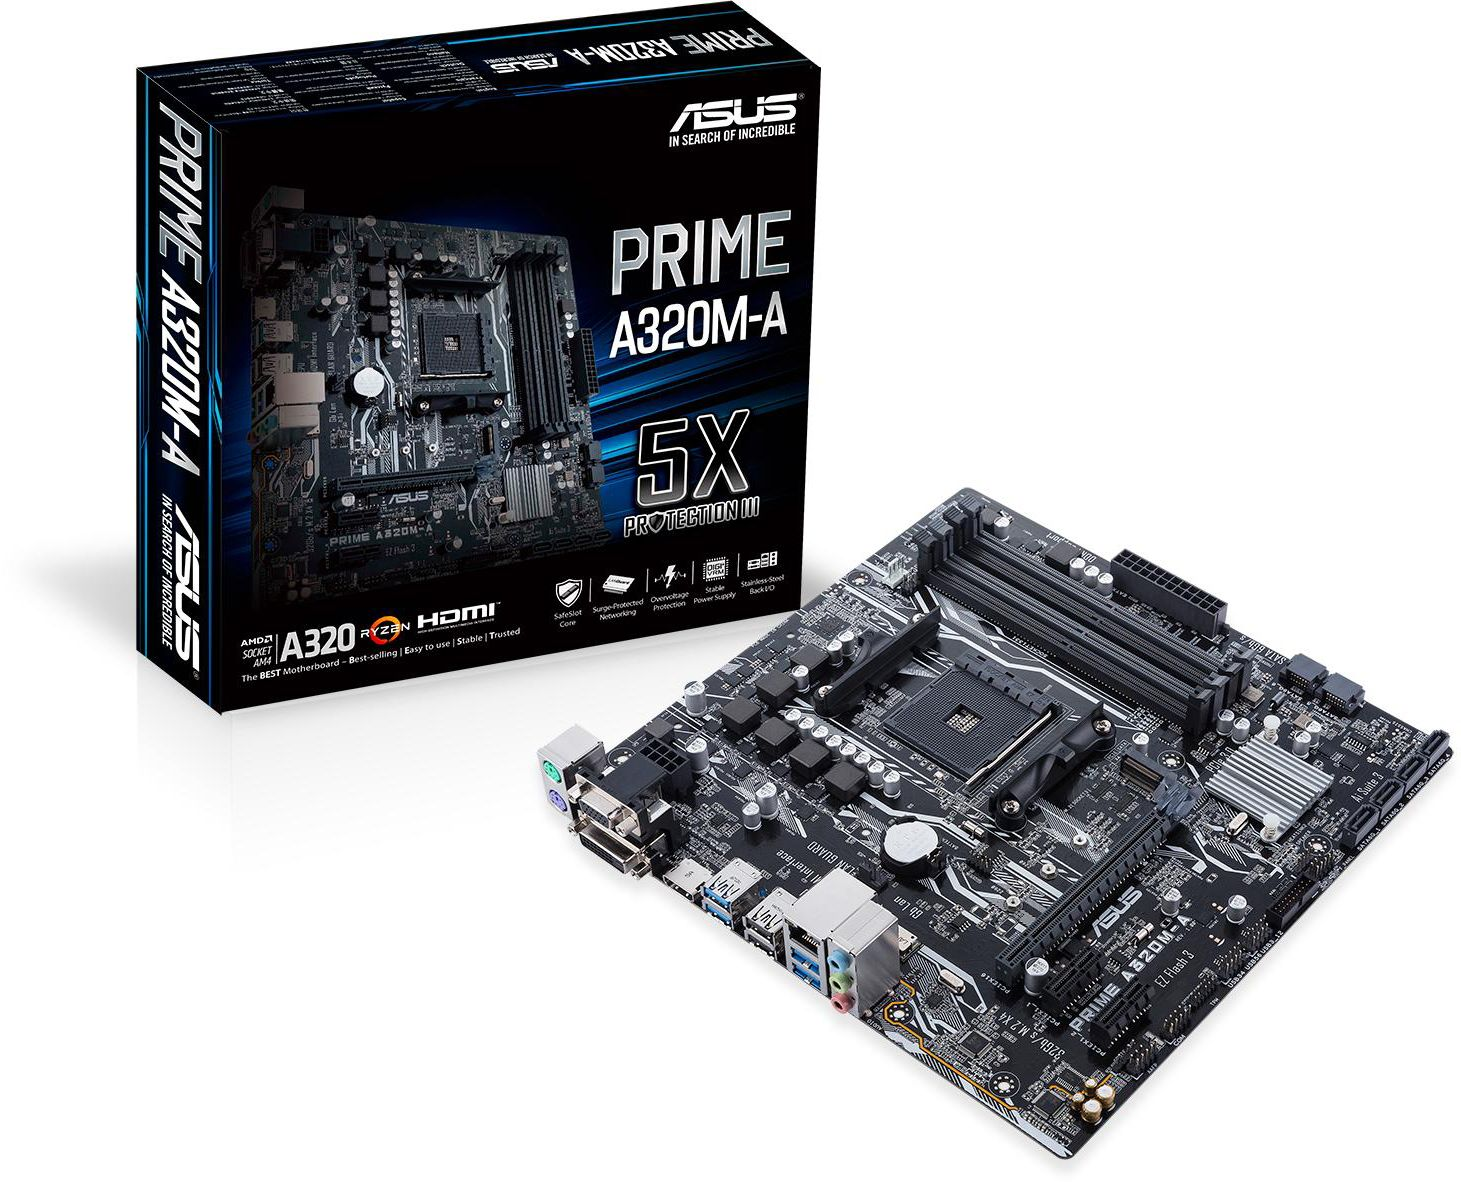 DRIVERS UPDATE: ASUS PRIME A320M-A MOTHERBOARD